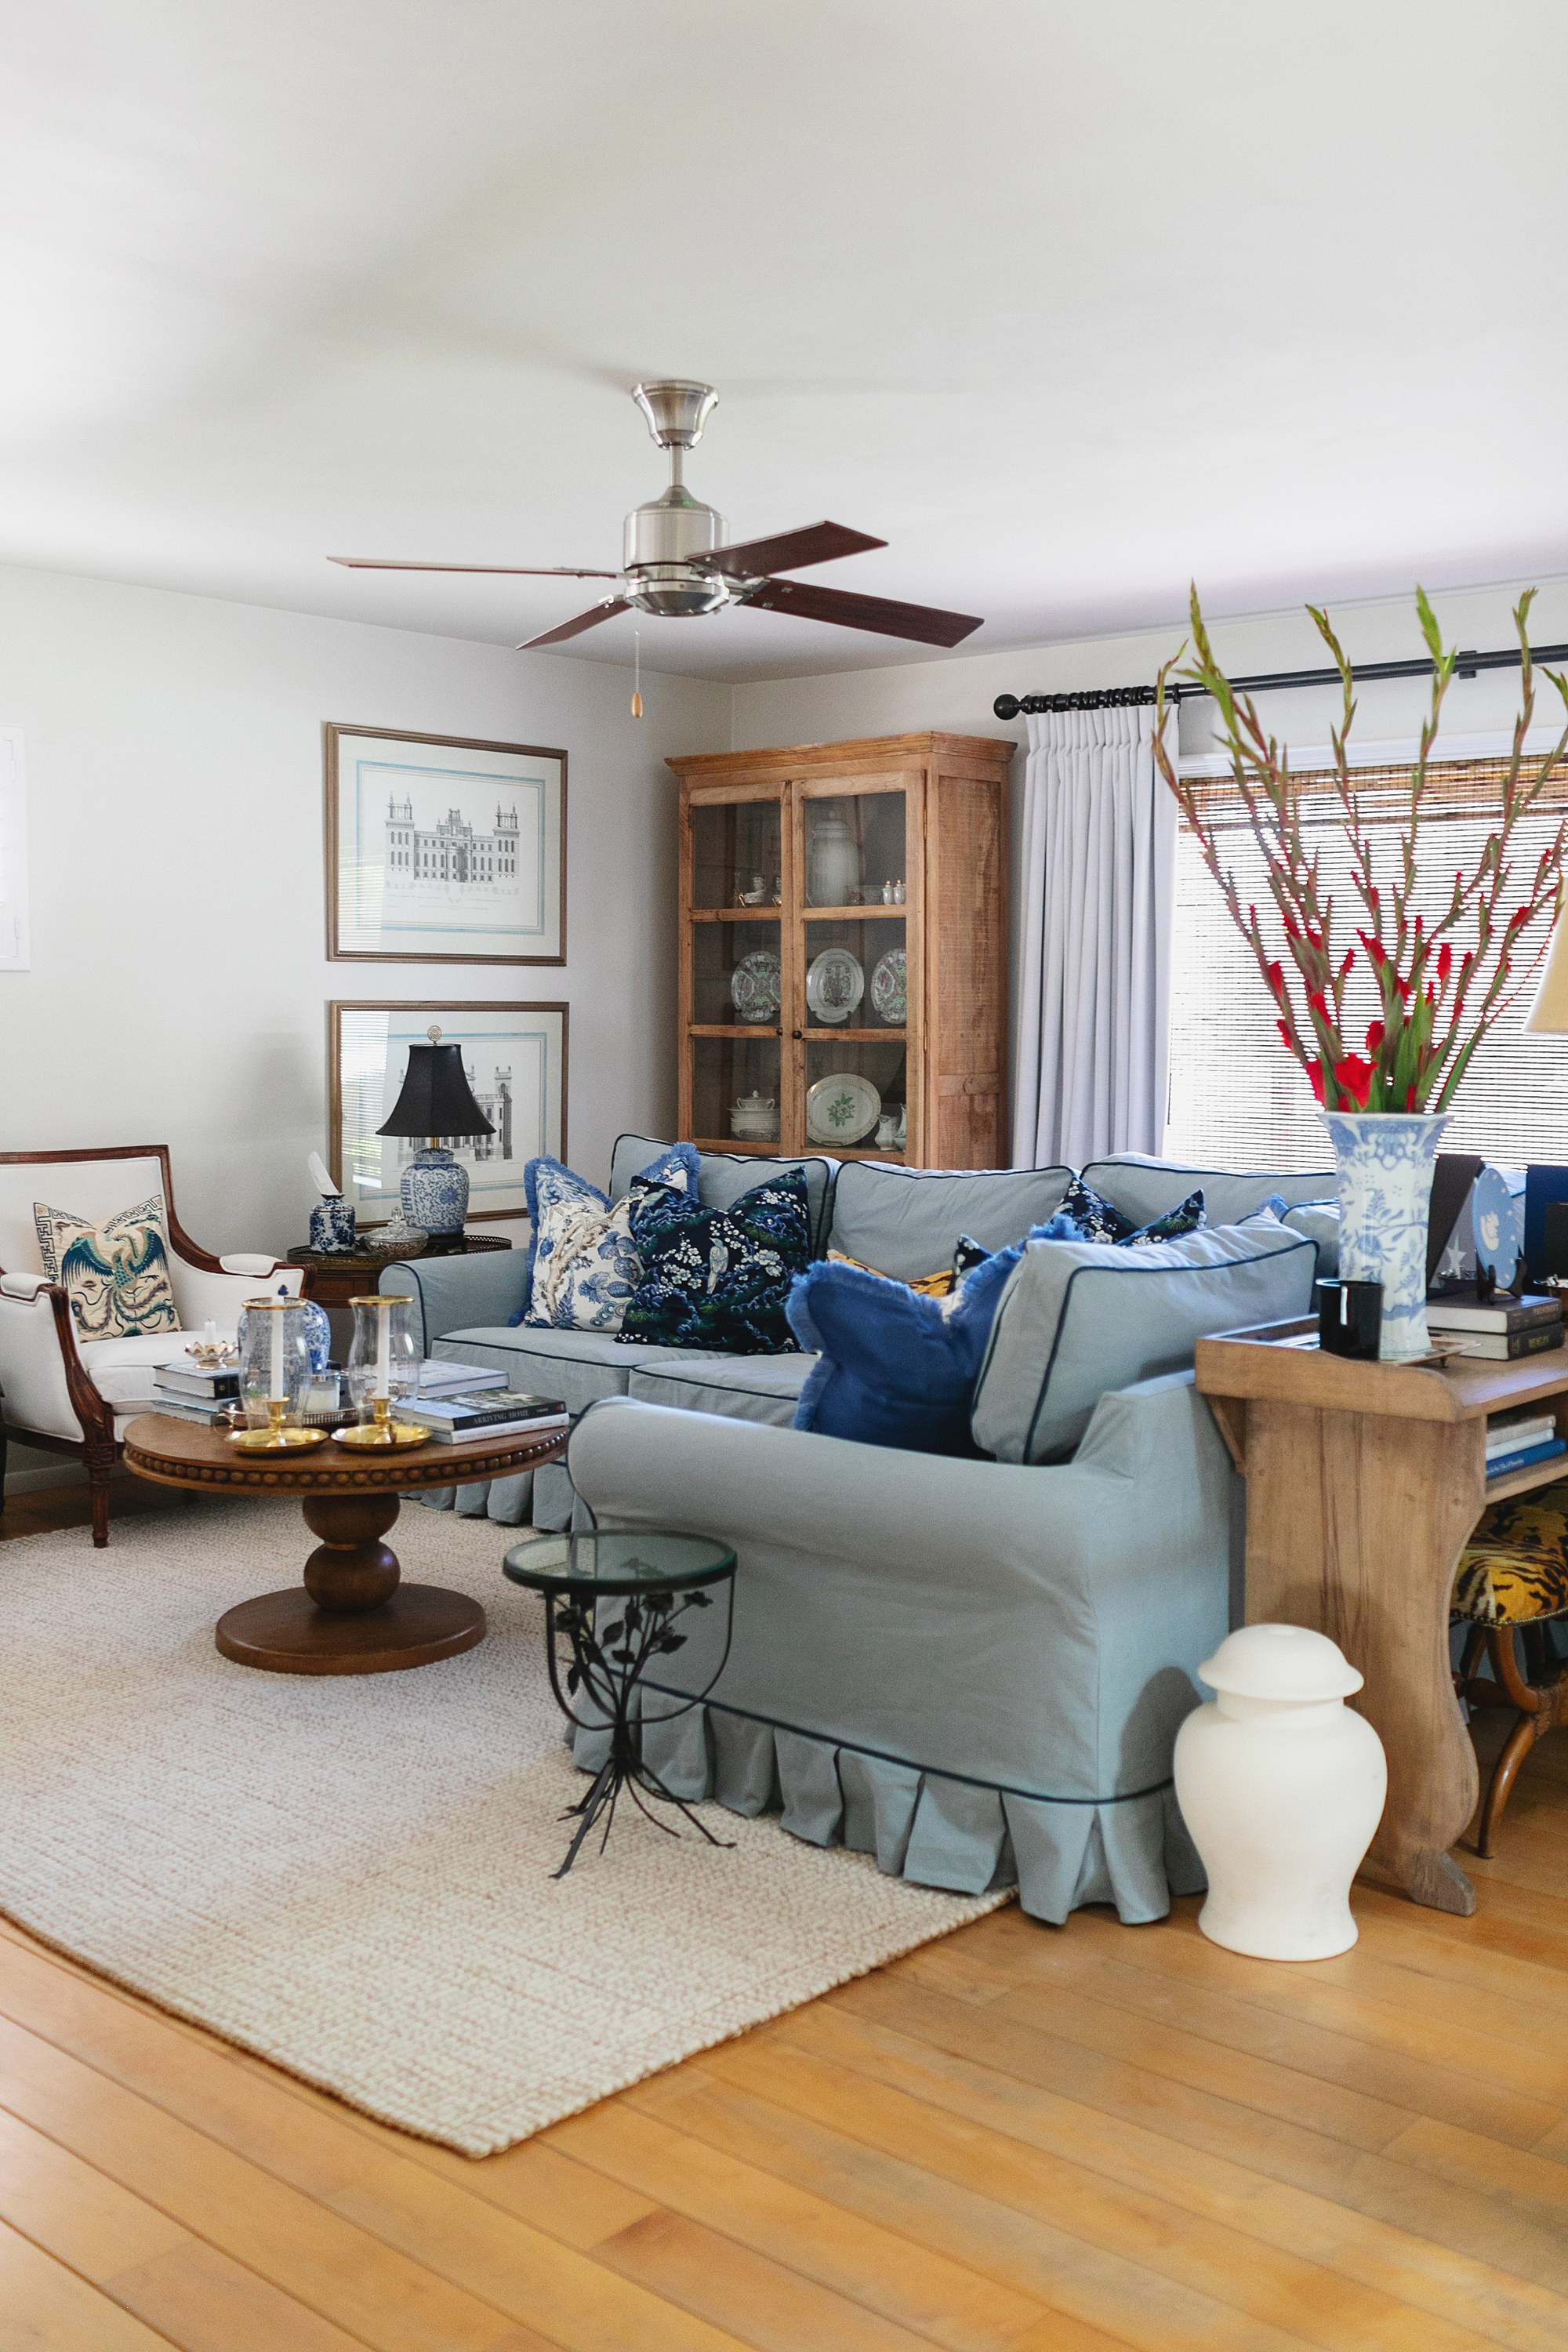 blue and white couch sectional couch blue and white living room pleated skirt sherwin Williams alabaster white on the walls American decoration traditional